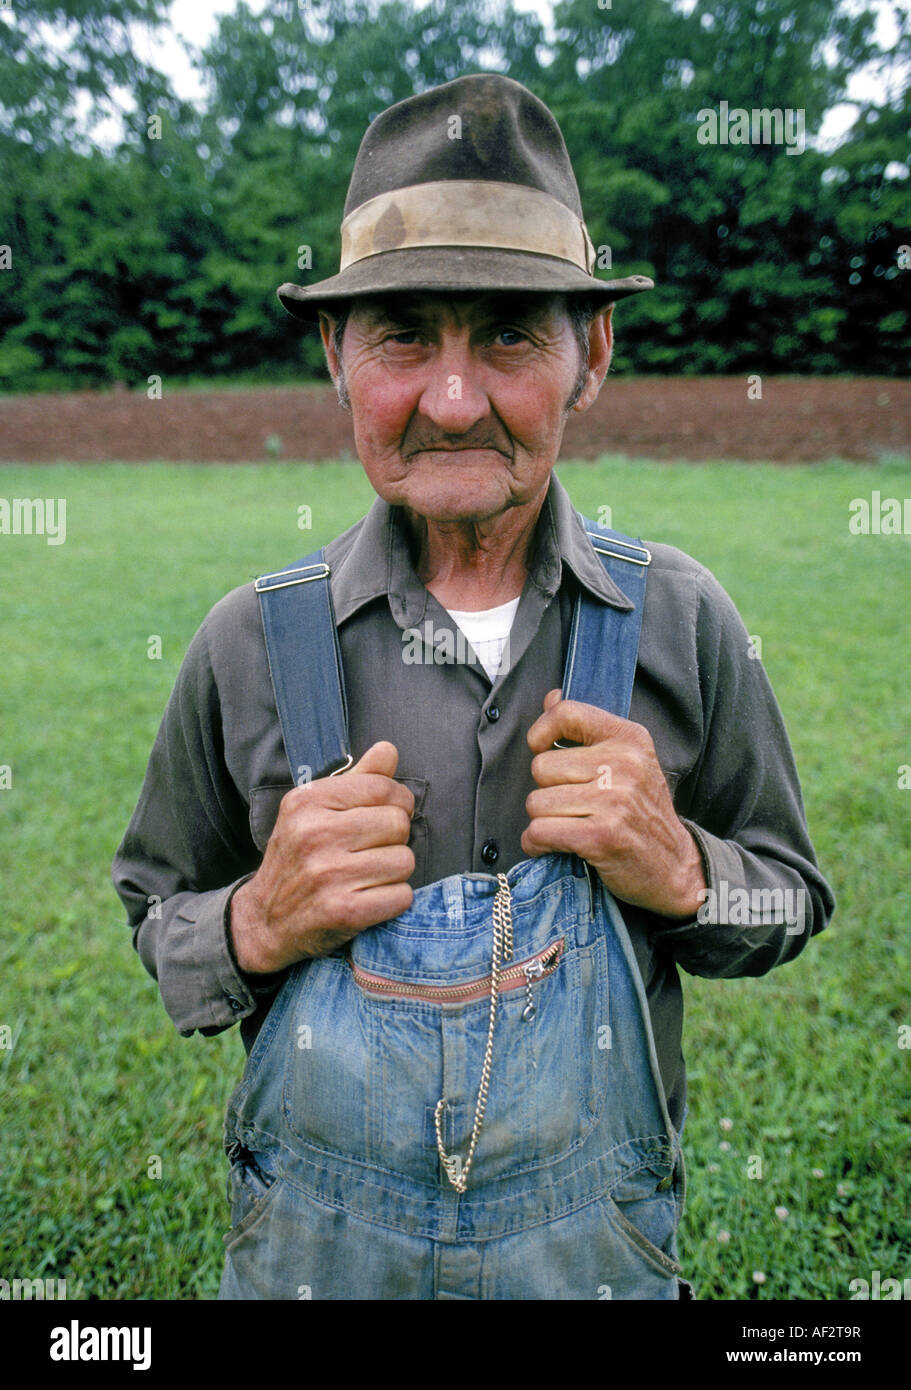 portrait of a hillbilly a farmer dressed in overalls in